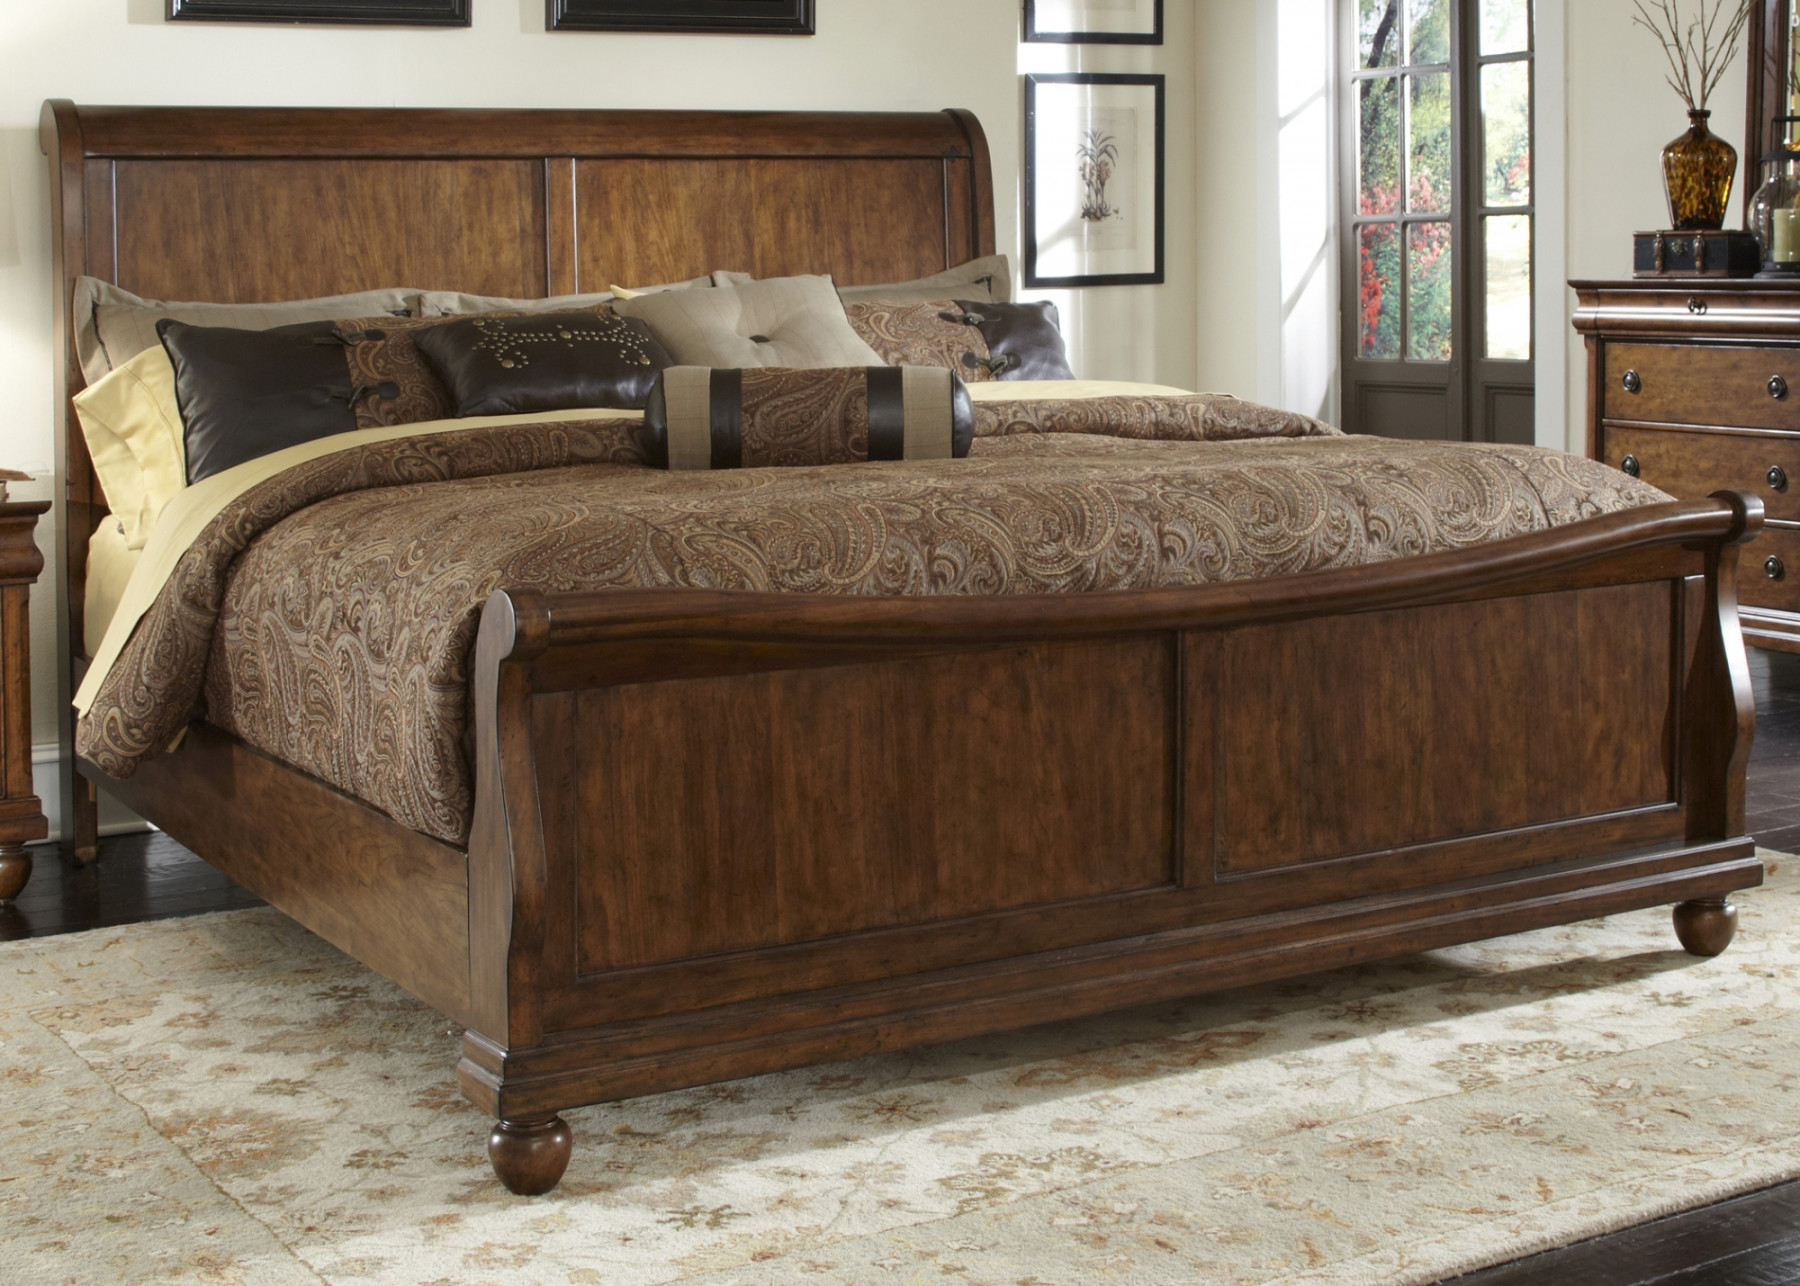 liberty rustic traditions king sleigh bed 589 br set68 17026 | liberty rustic traditions 589 br set81br21f h 90 1 1